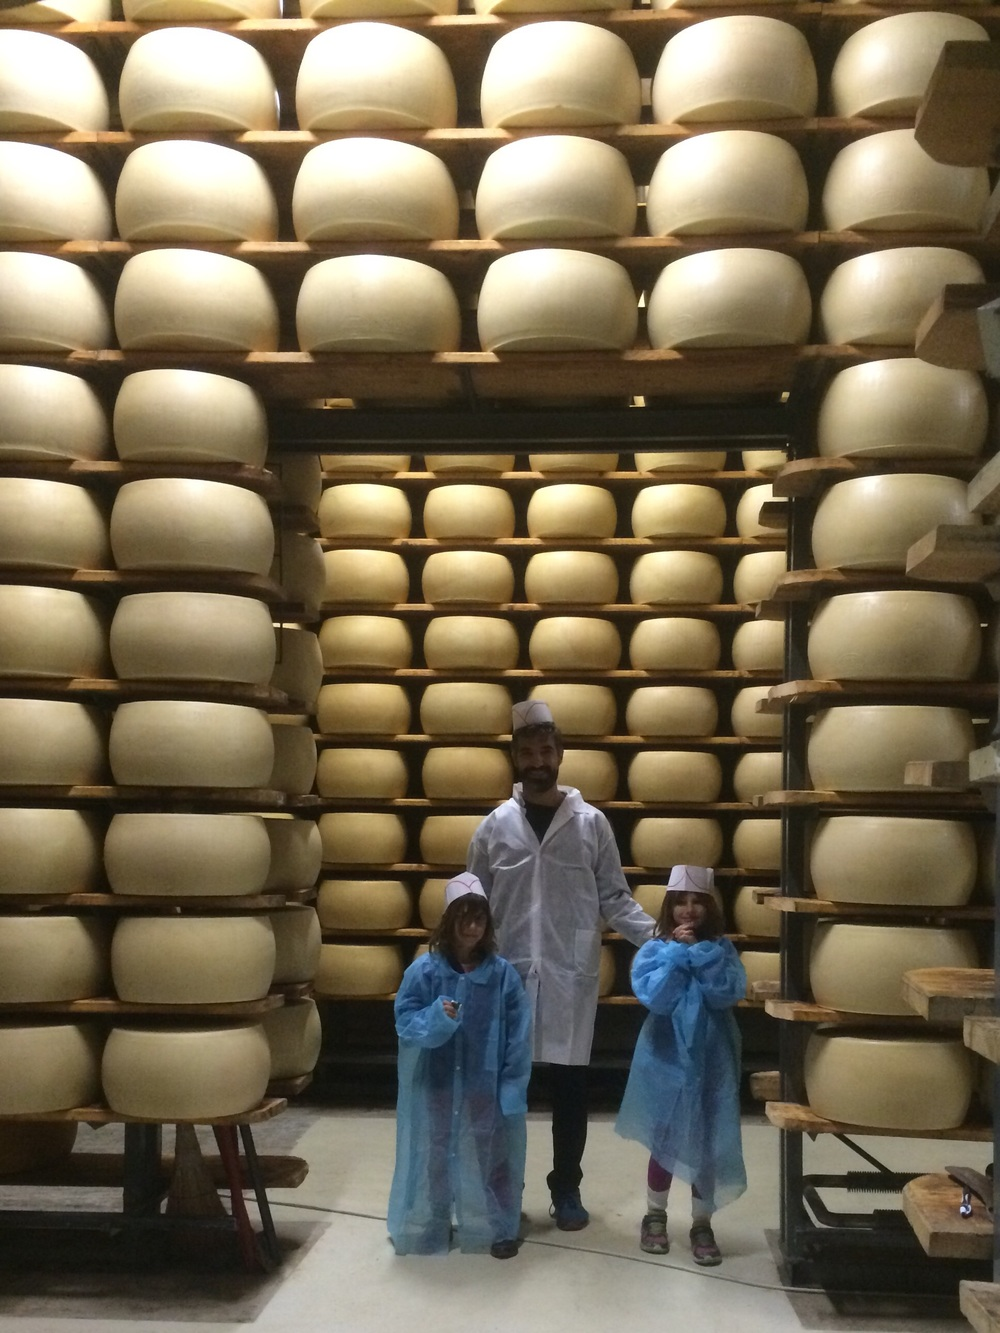 There's no shortage of Parmigiano-Reggiano here!